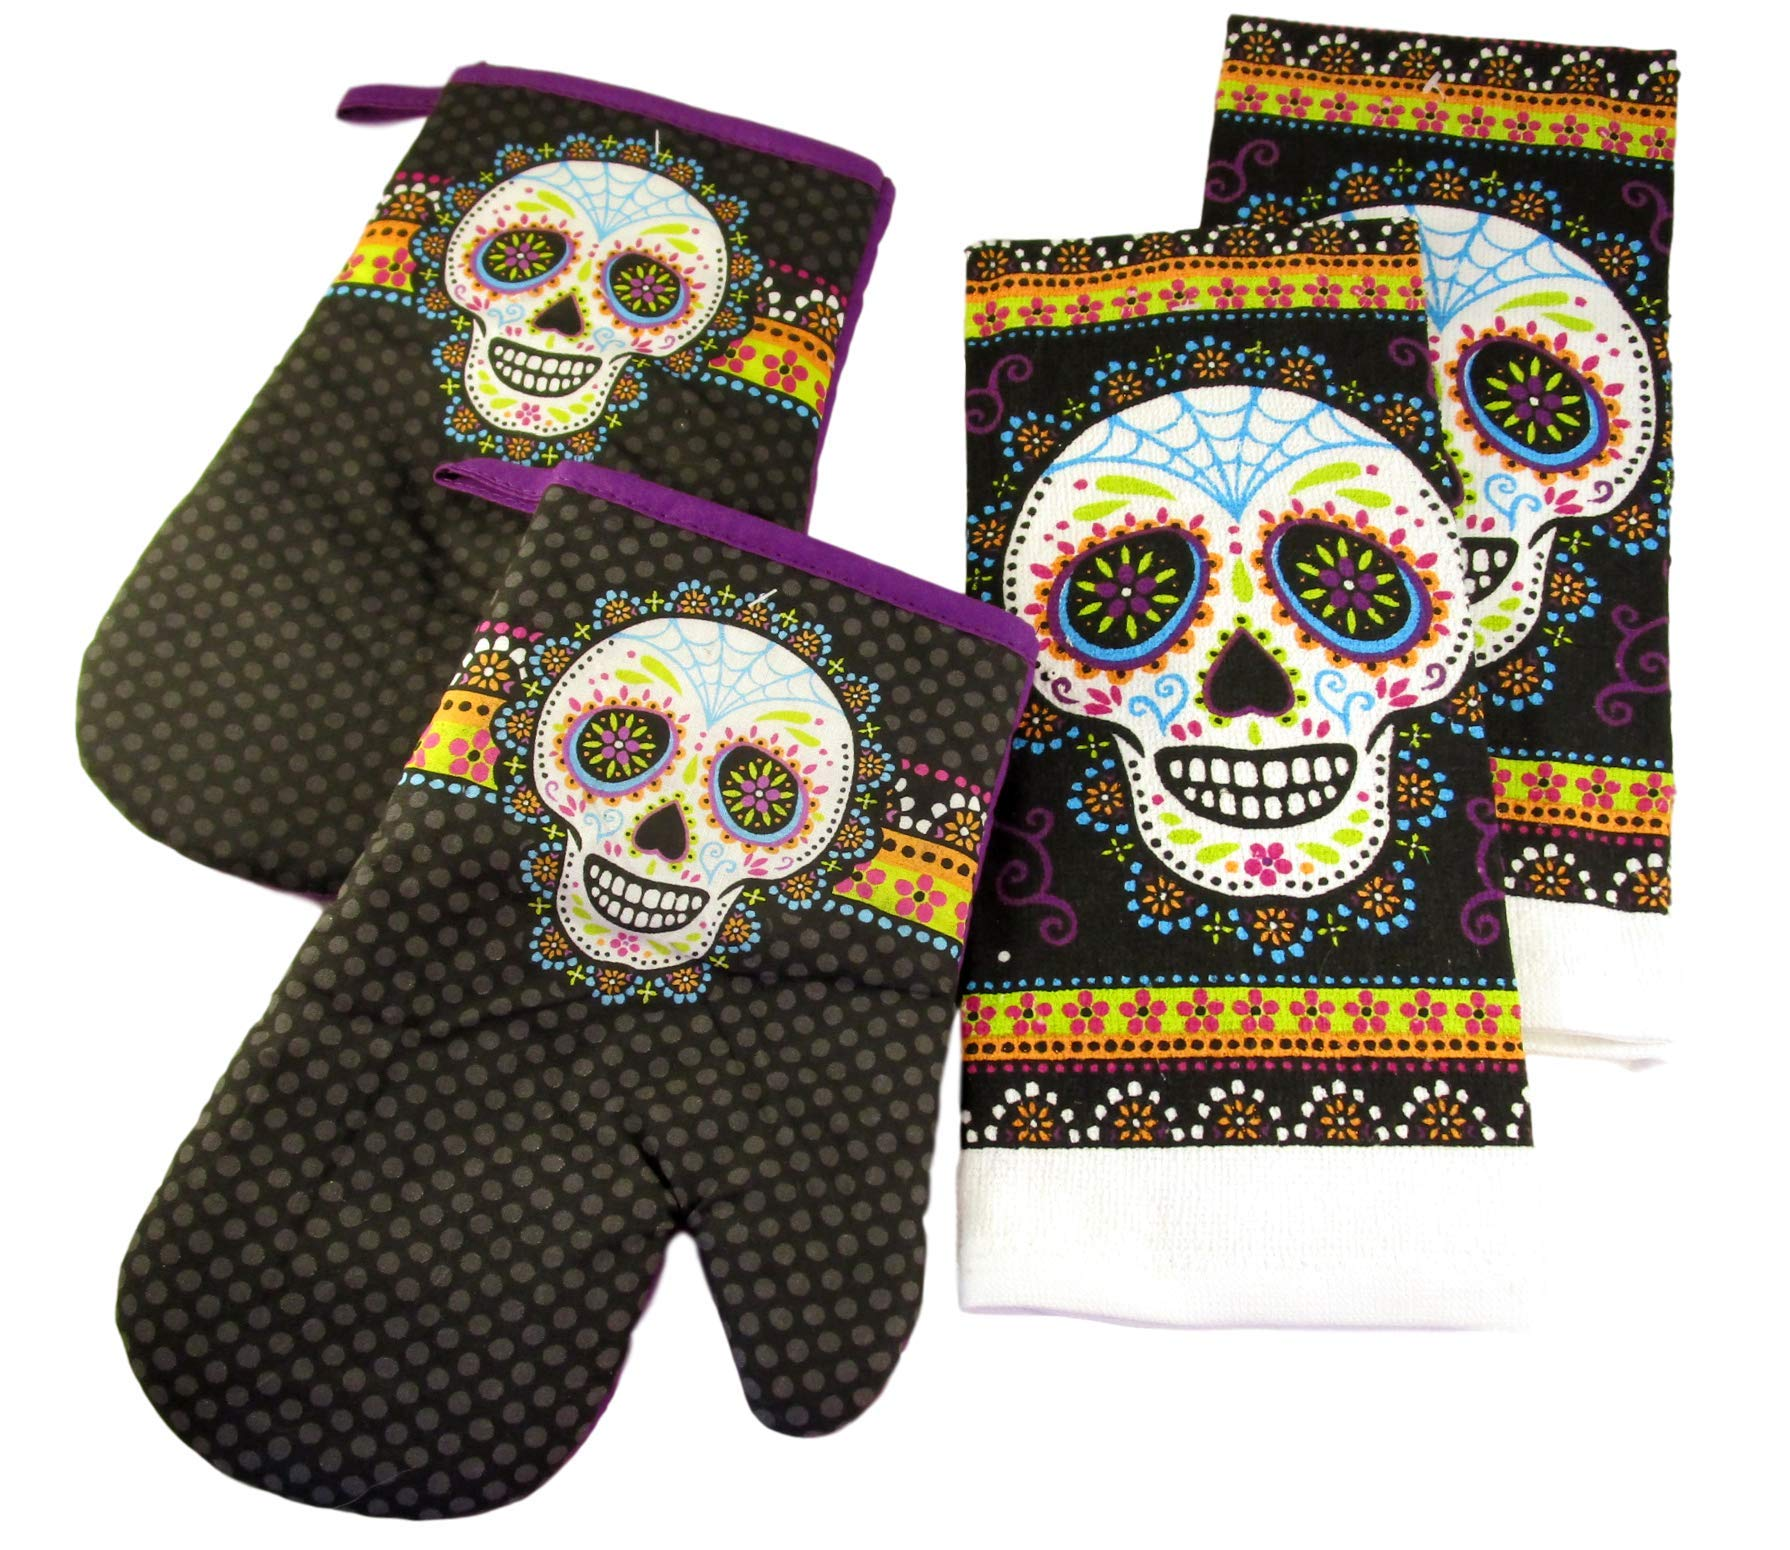 Halloween Kitchen Towels and Oven Mitts - Bundle of 4 Items: 2 Dish Towels and 2 Oven Mitts (Sugar Skulls with Polka Dots)